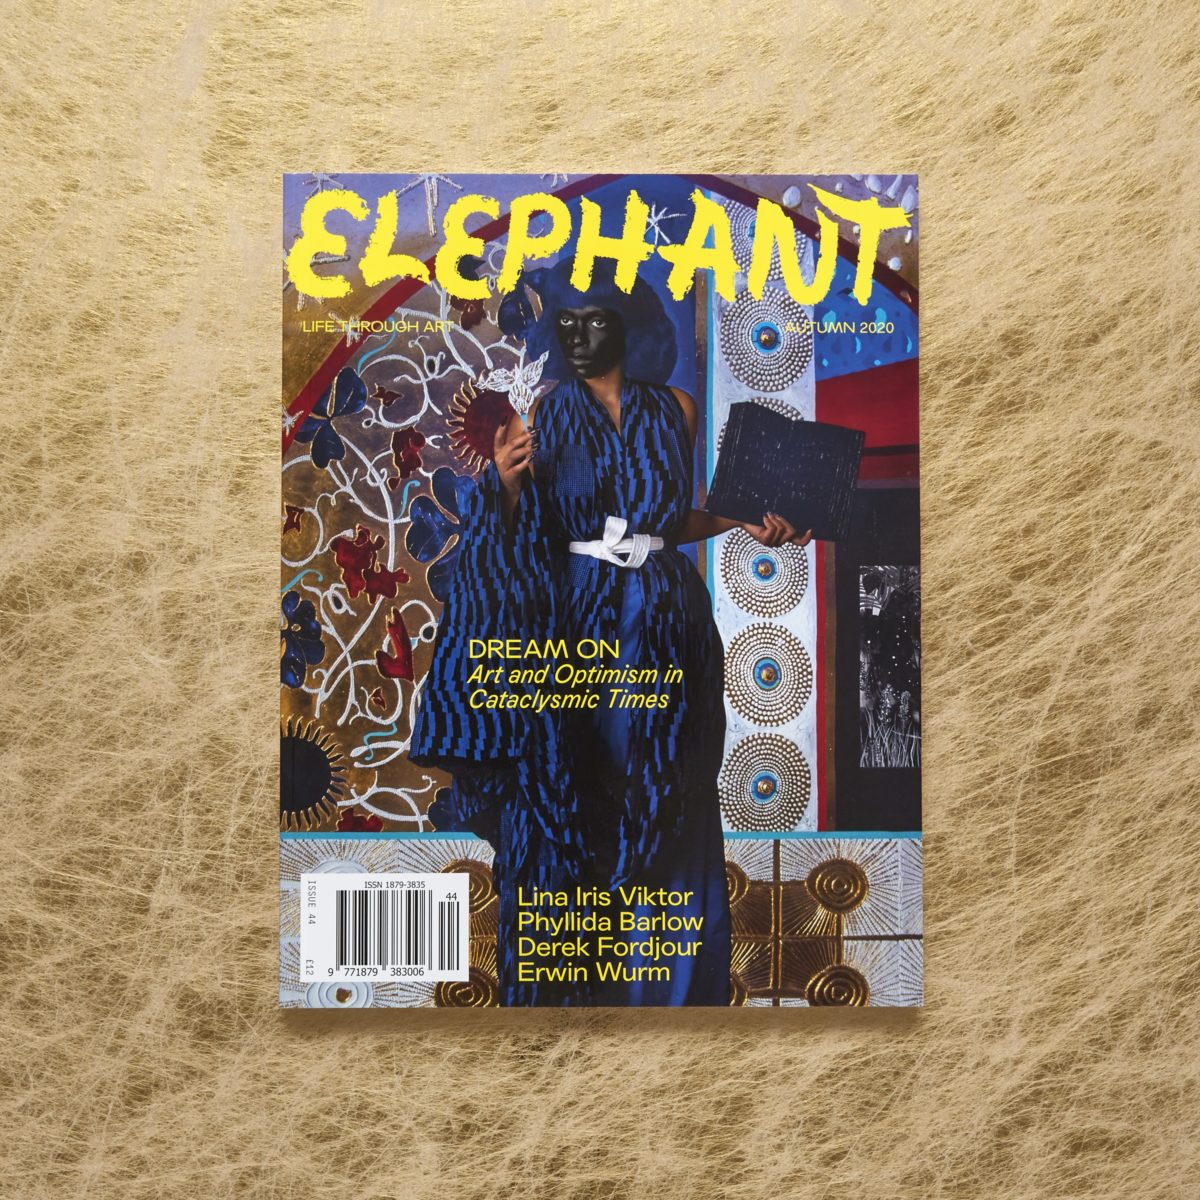 Elephant's current issue